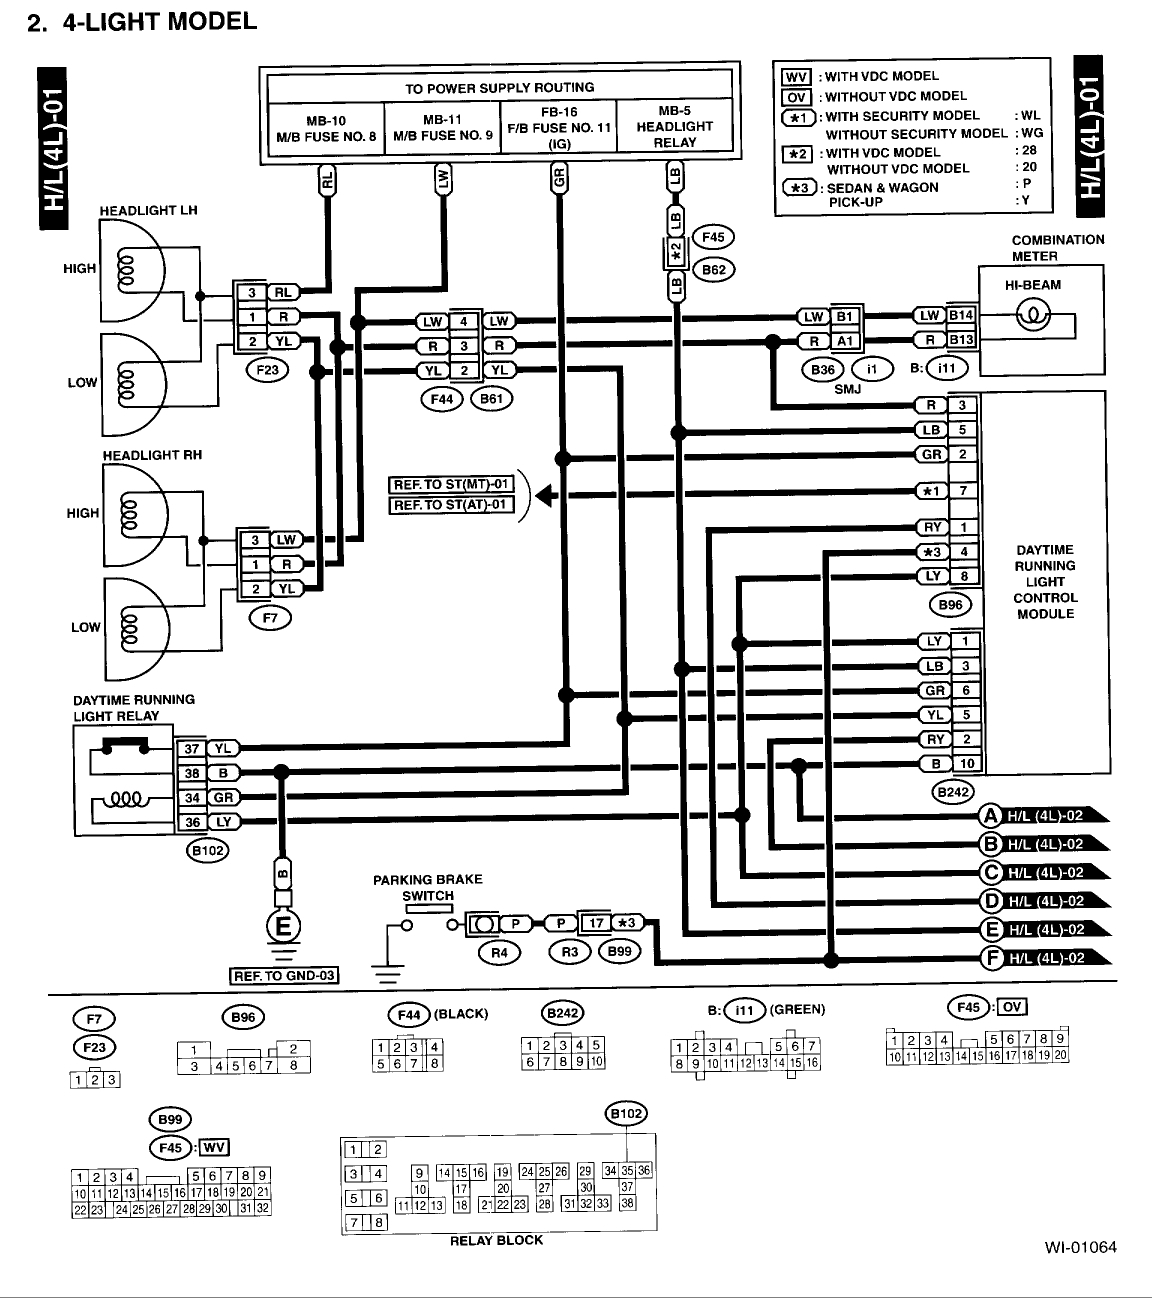 Impreza Rs Engine Control Module Pinouts 2004car Wiring Diagram